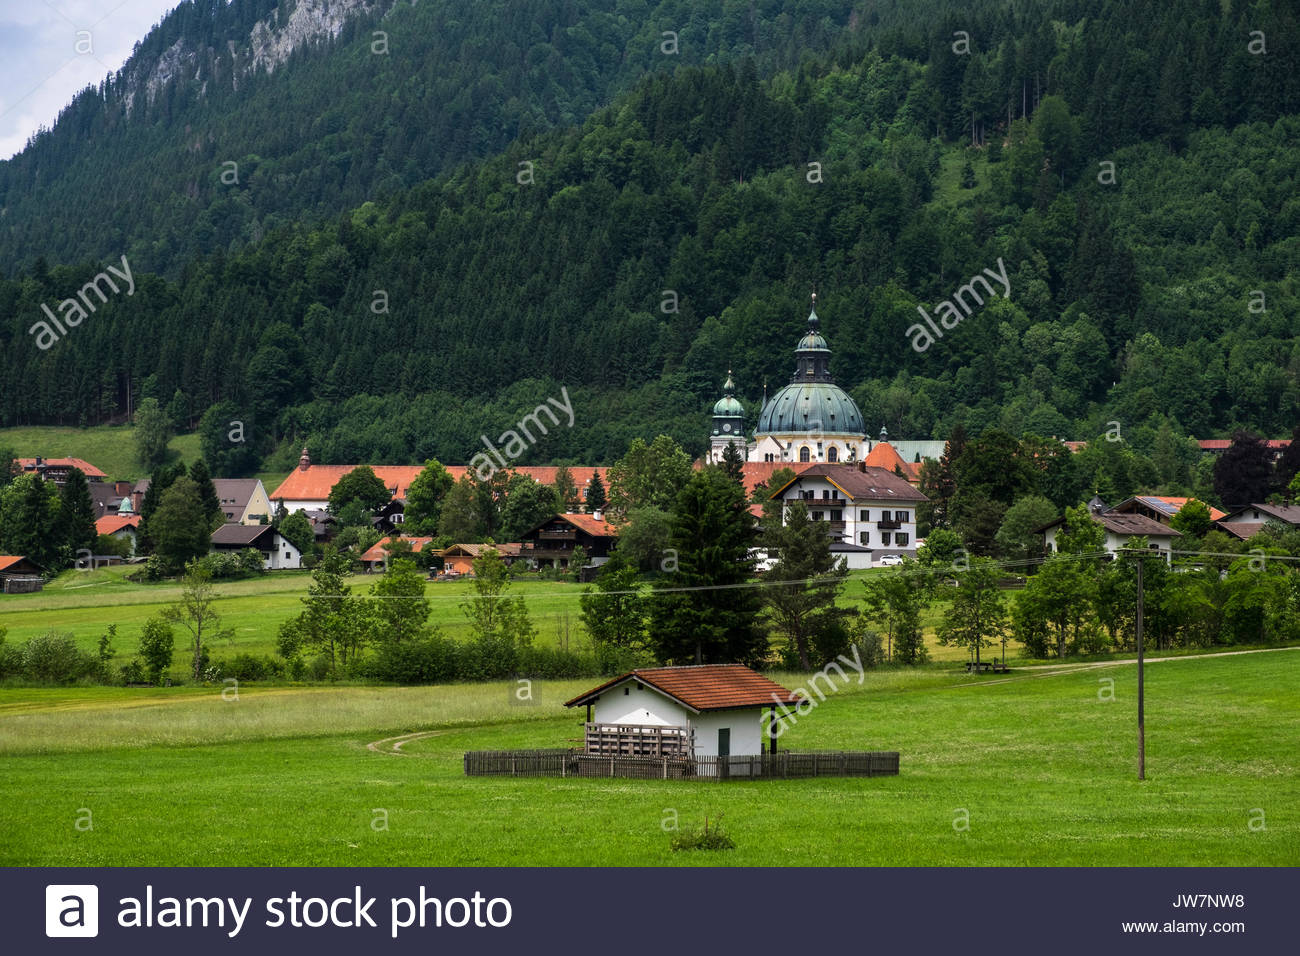 Kloster Ettal The Bavarian Alps, Monastery, Kloster Ettal, in a valley surrounded by forests ...